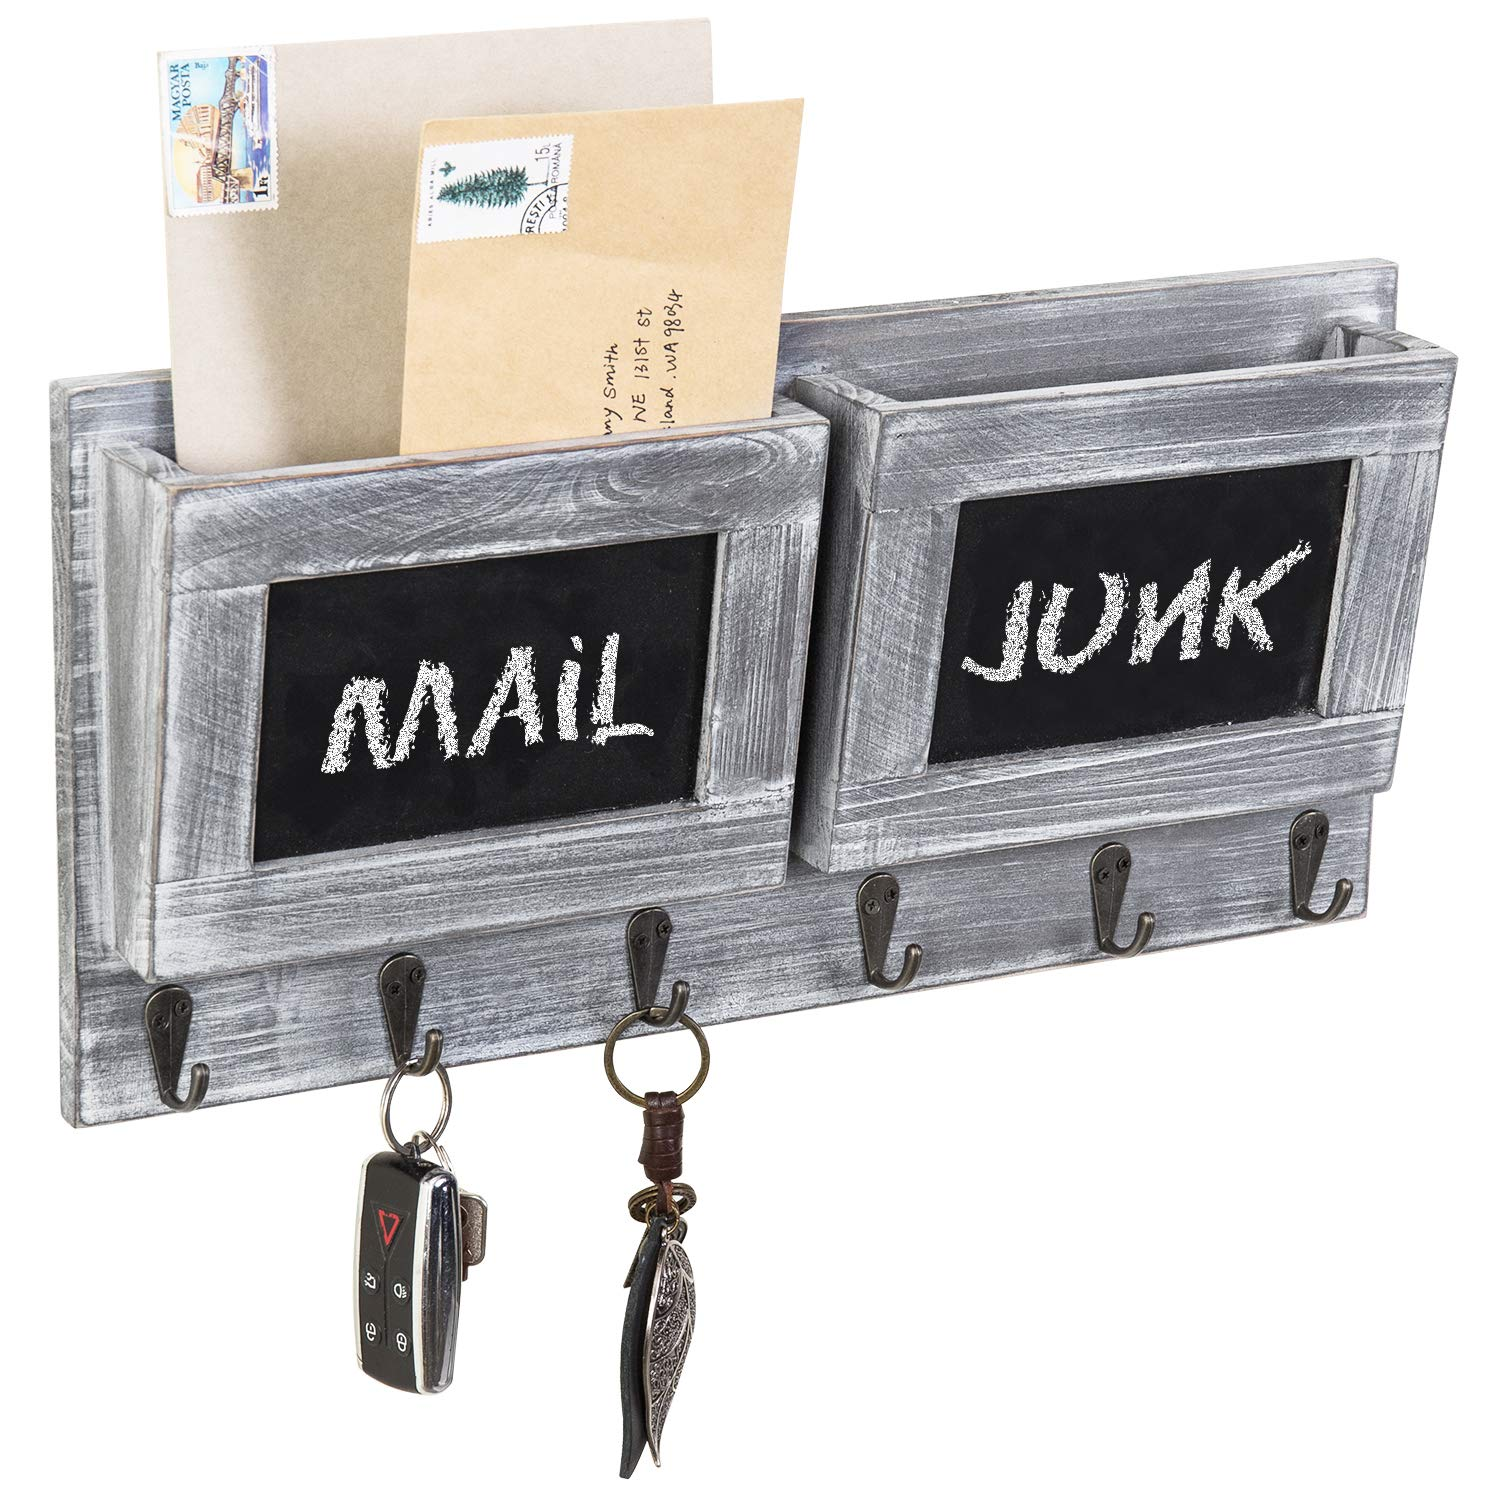 MyGift 2-Slot Rustic Wall-Mounted Wood Mail Holder with 6 Key Hooks and Chalkboard Labels